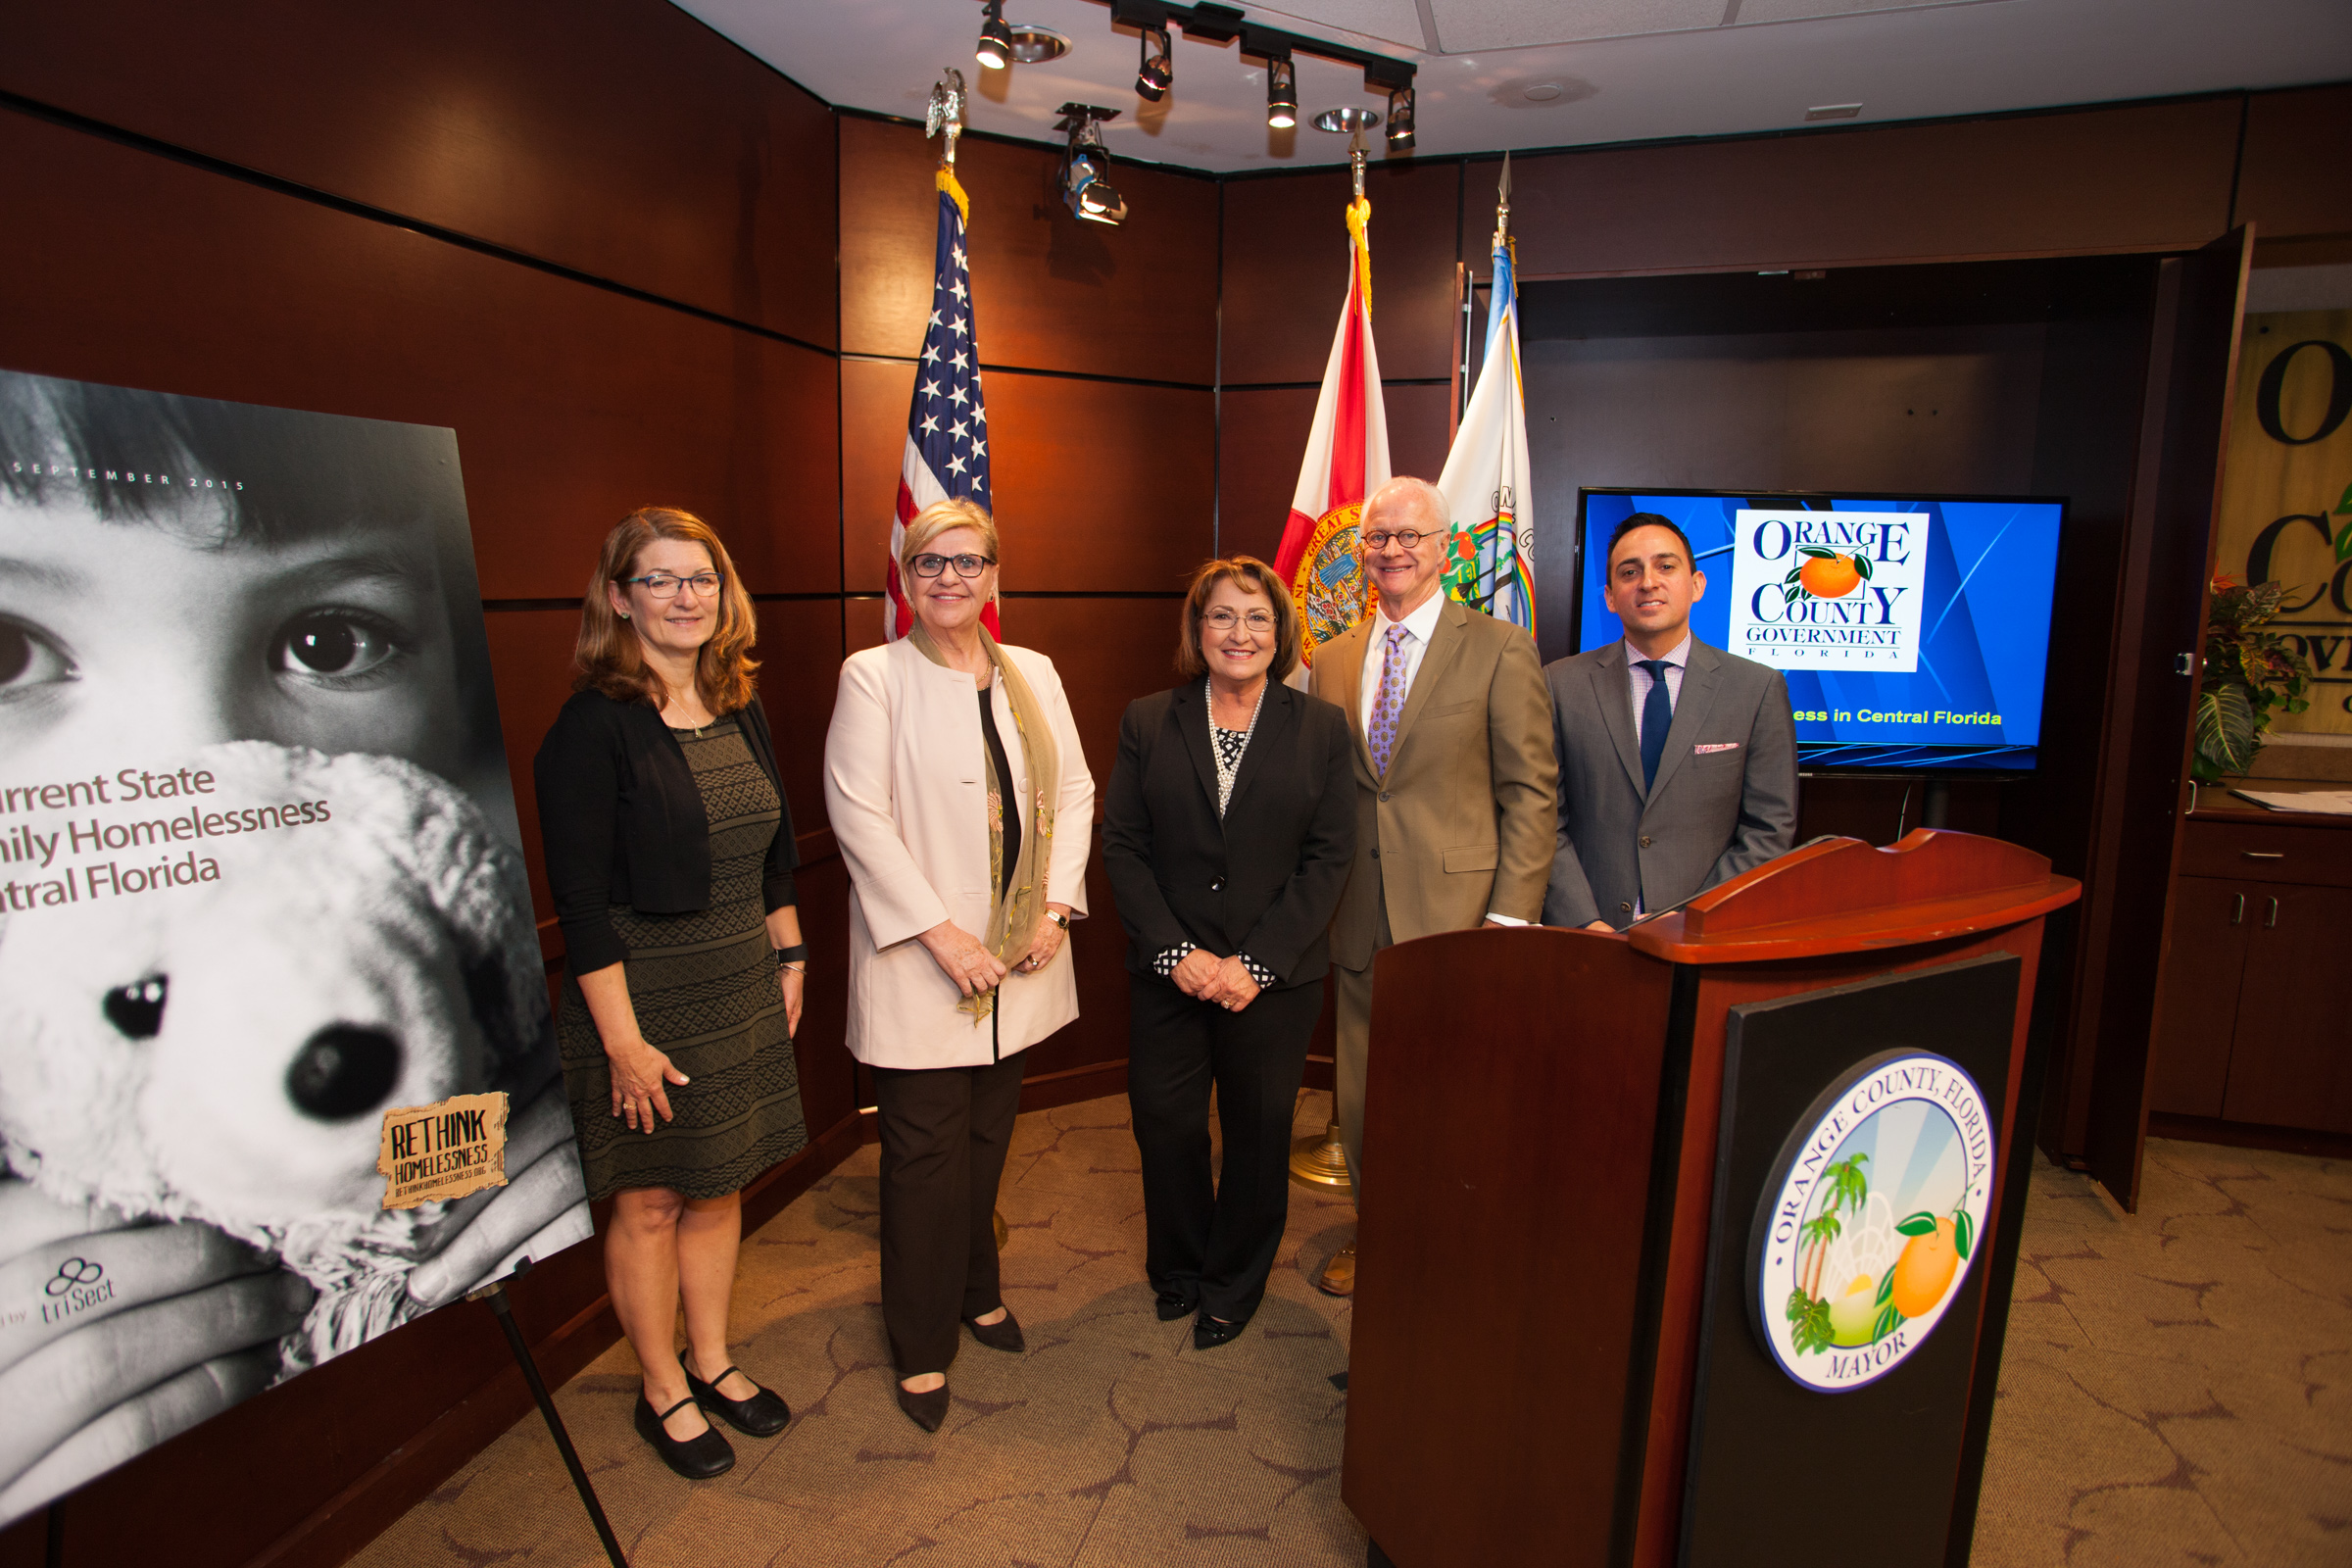 Barbara Poppe, Linda Landman Gonzalez, Mayor Teresa Jacobs, Dick Batchelor and Andrae Bailey